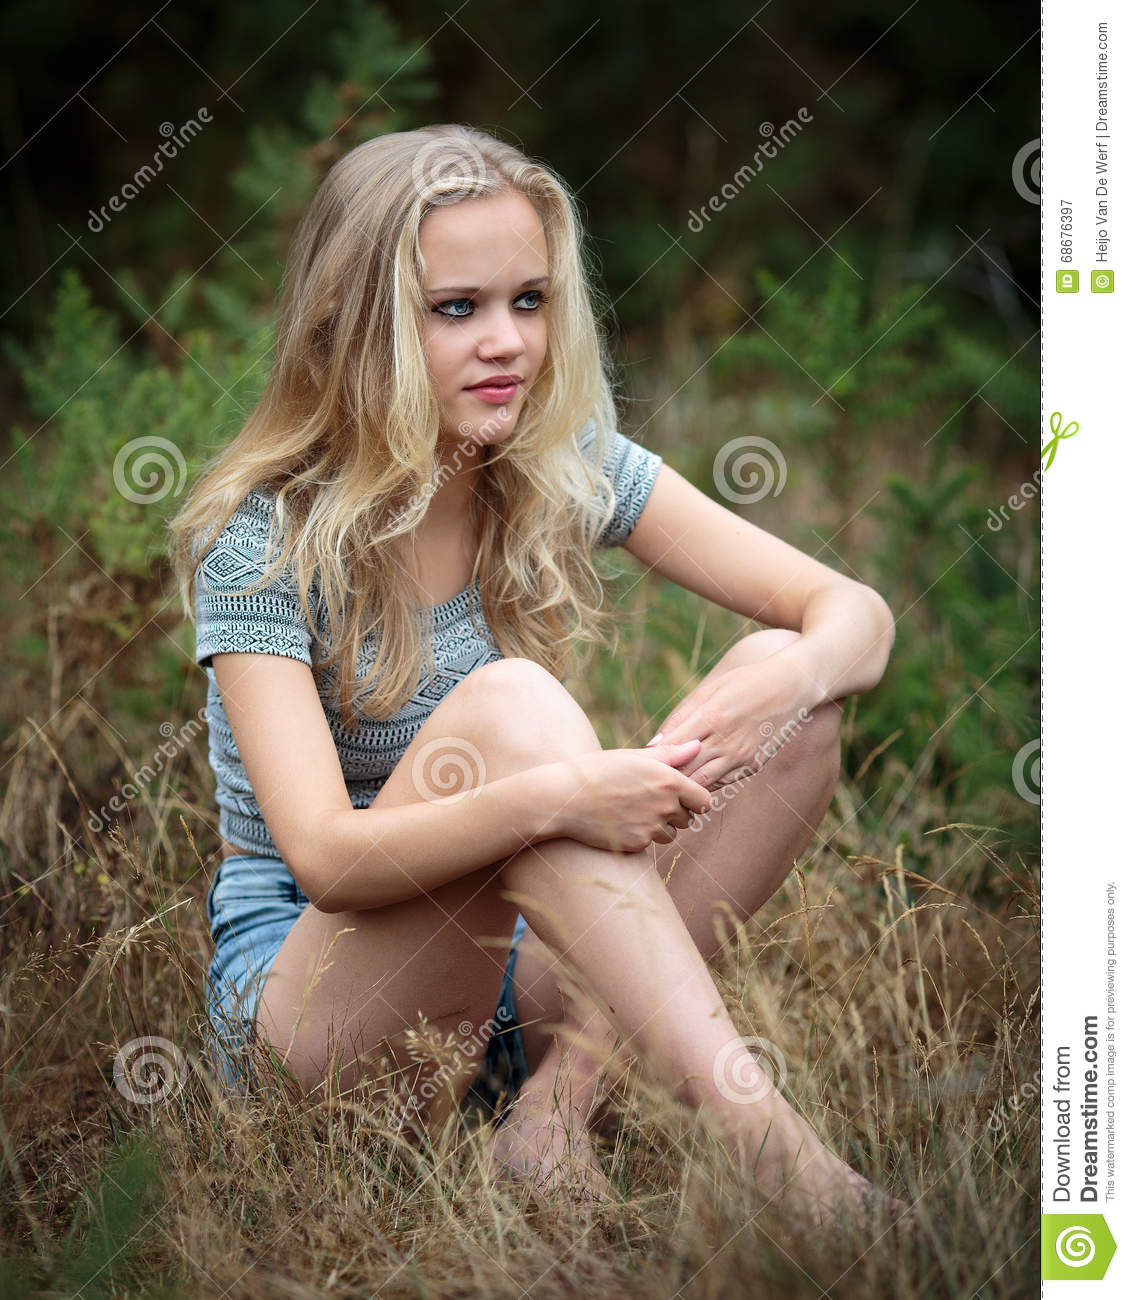 Pretty Blond Teenager Sitting In The Grass Stock Image